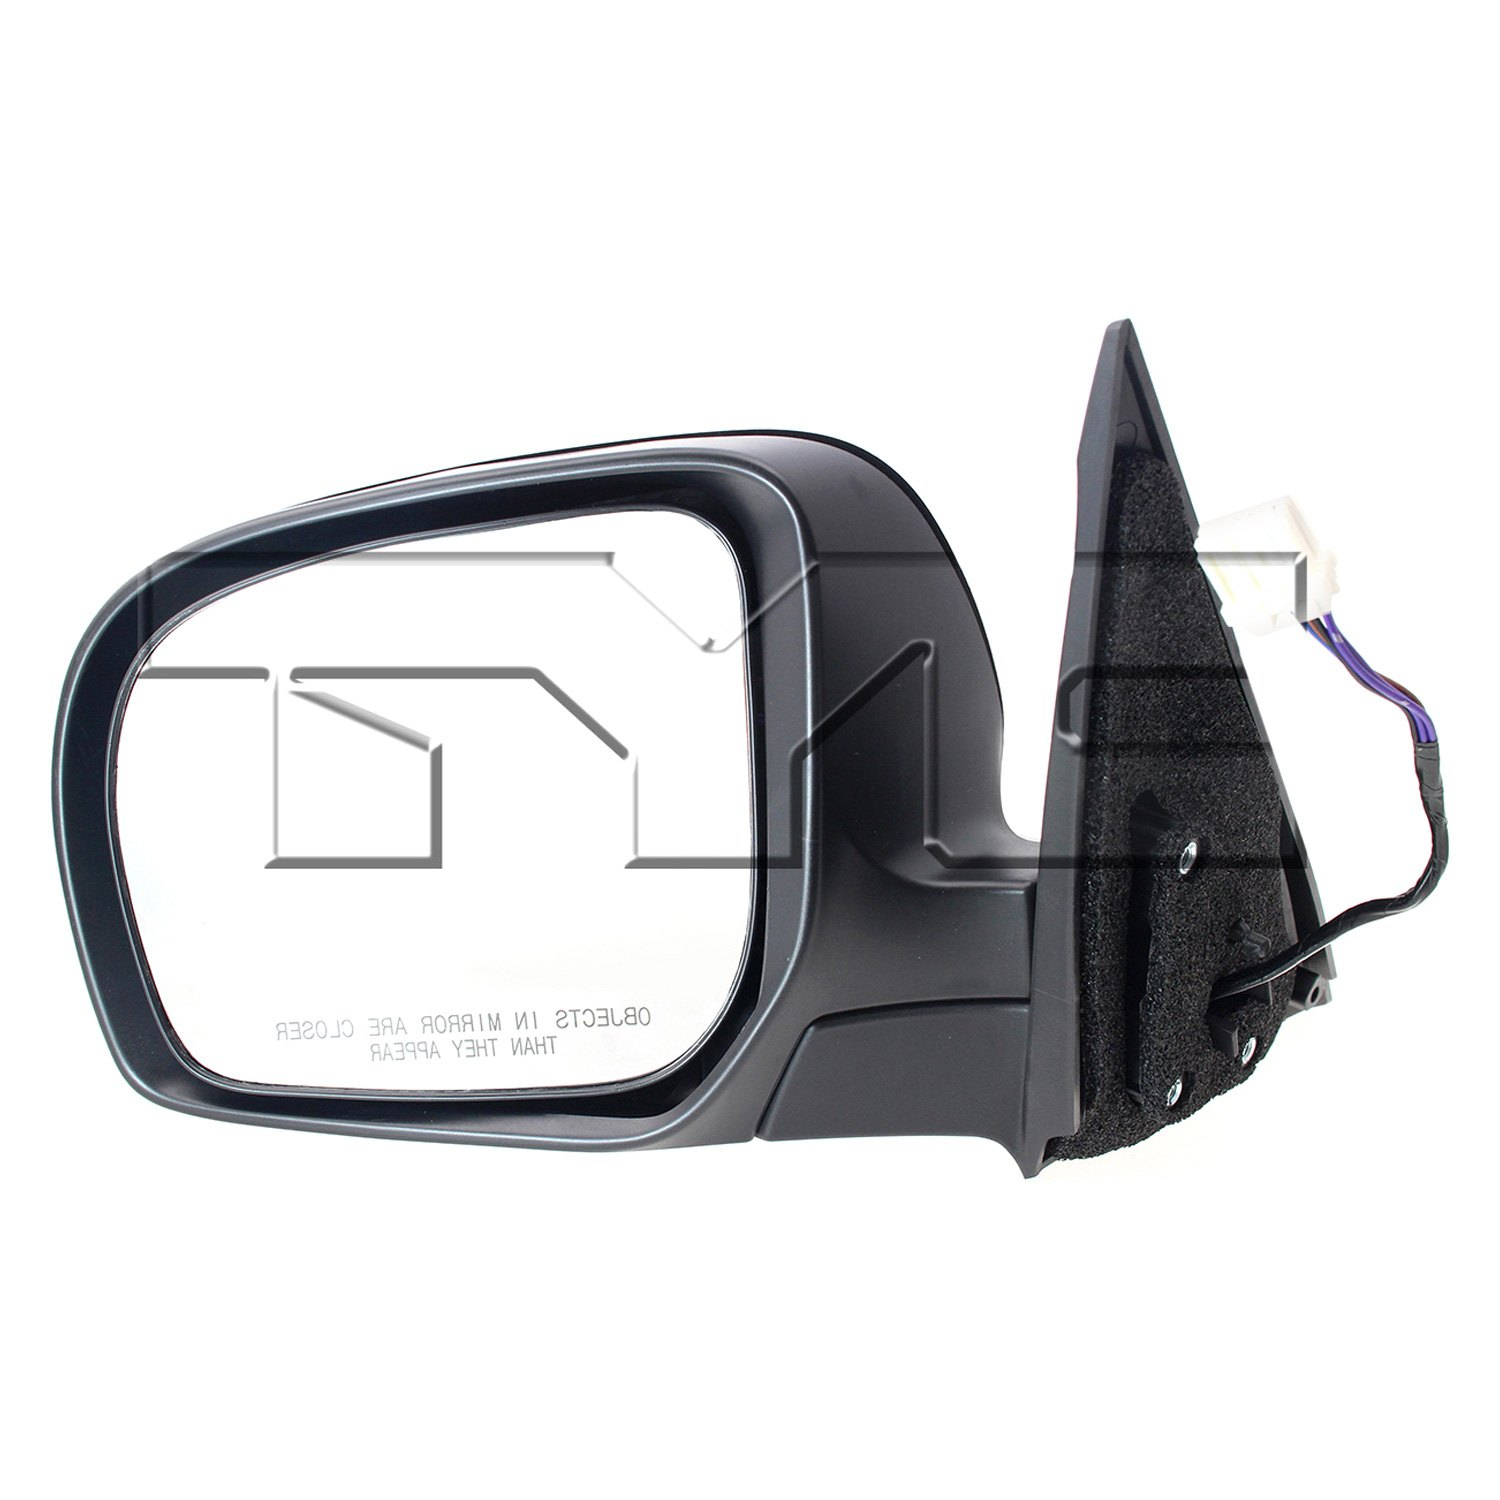 Tyc 174 Subaru Forester 2011 Power Side View Mirror